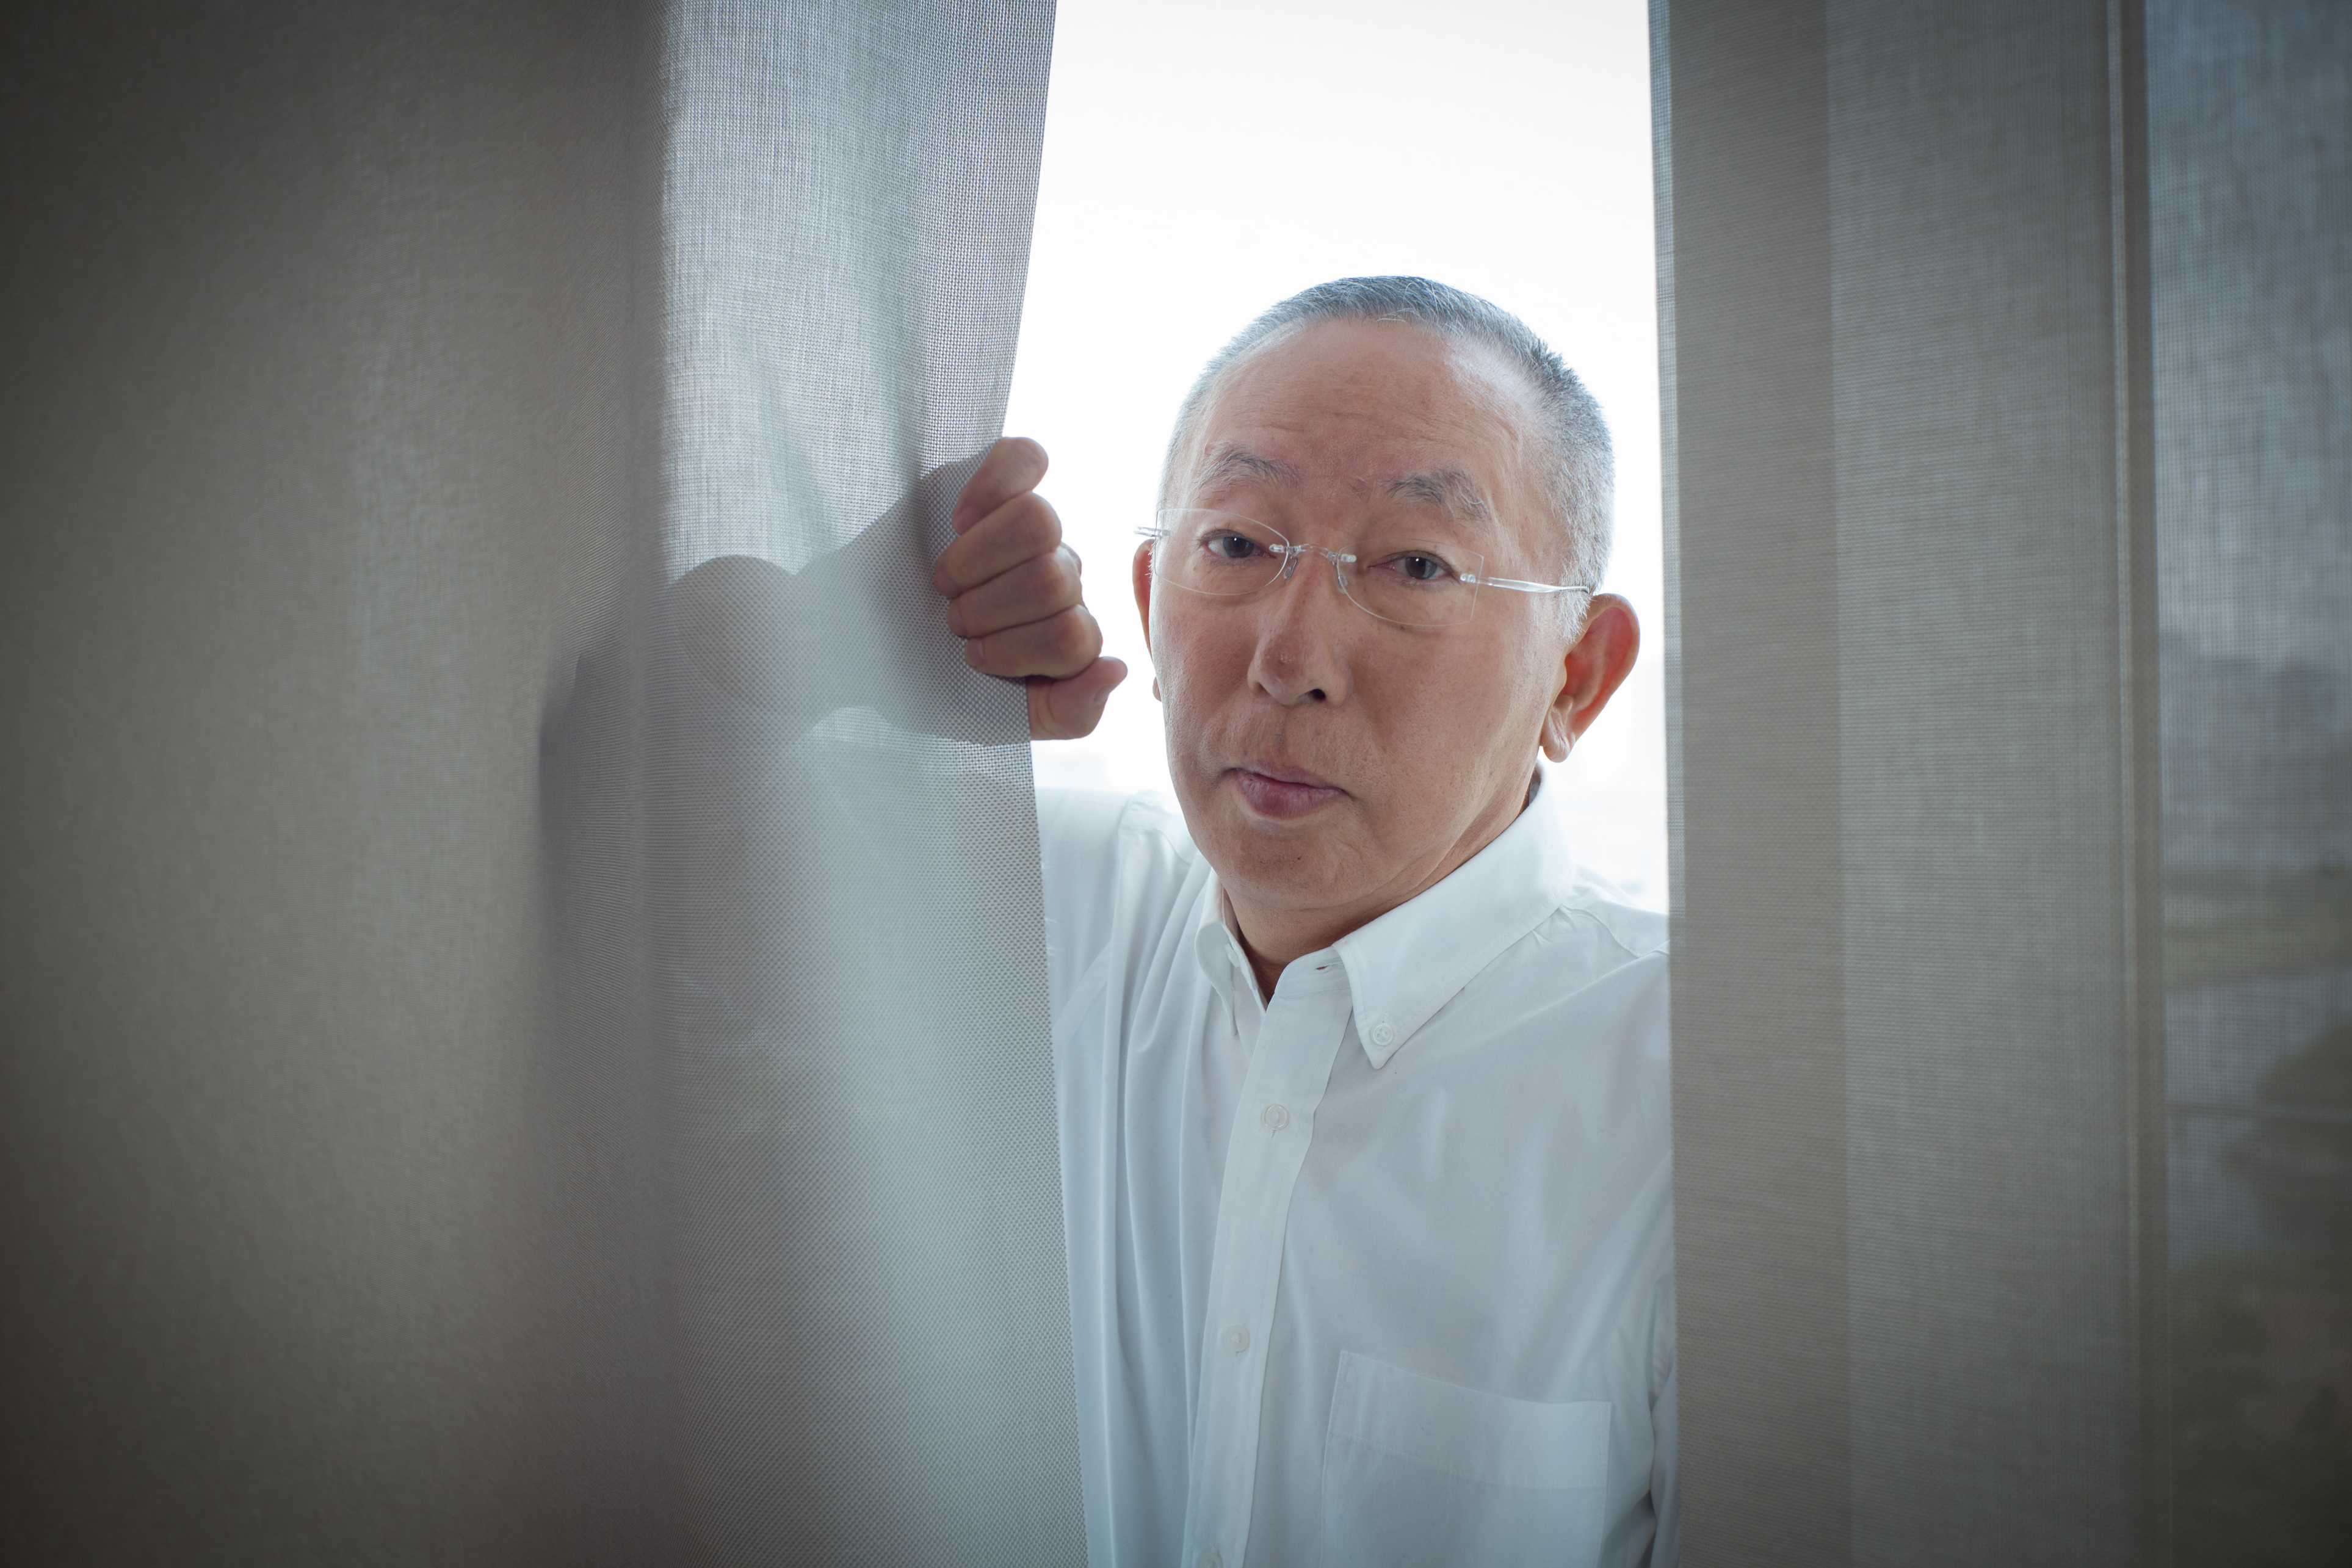 Billionaire Uniqlo Founder Tadashi Yanai Wants a Woman to Succeed Him as CEO. Uniqlo is part of Fast Retailing